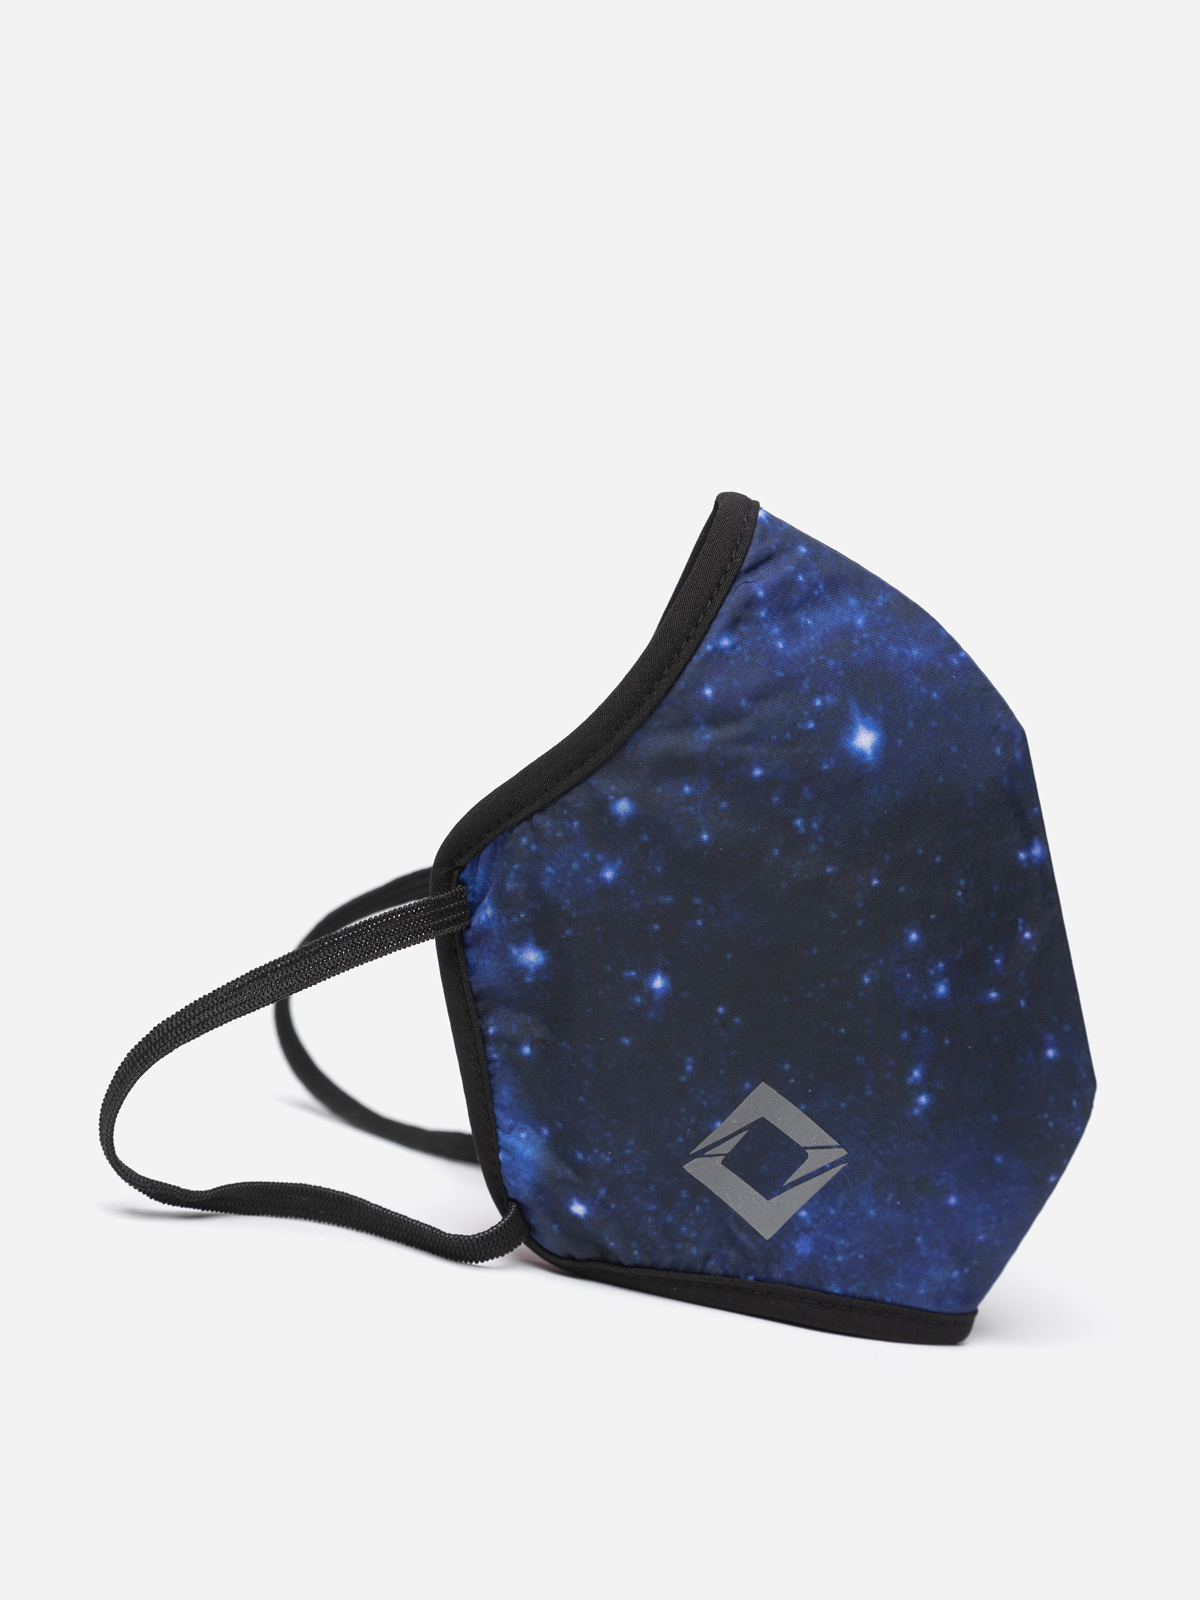 SOC PERFORMANCE | Stellar Space Protective Facemask (Set of 2)